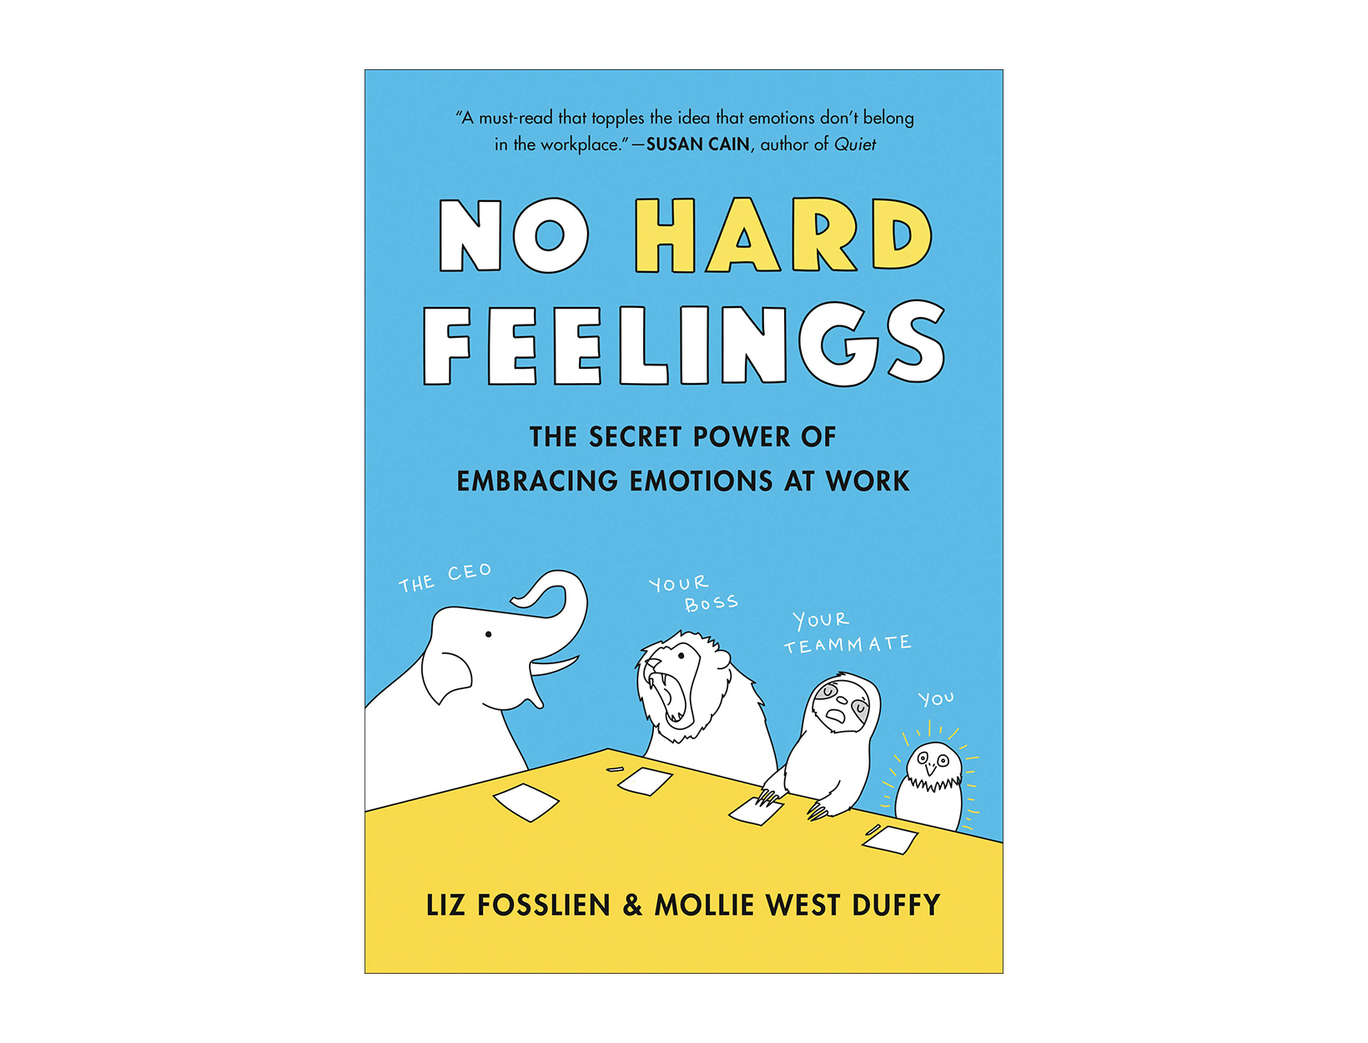 <em>No Hard Feelings</em> by Liz Fosslien and Mollie West Duffy